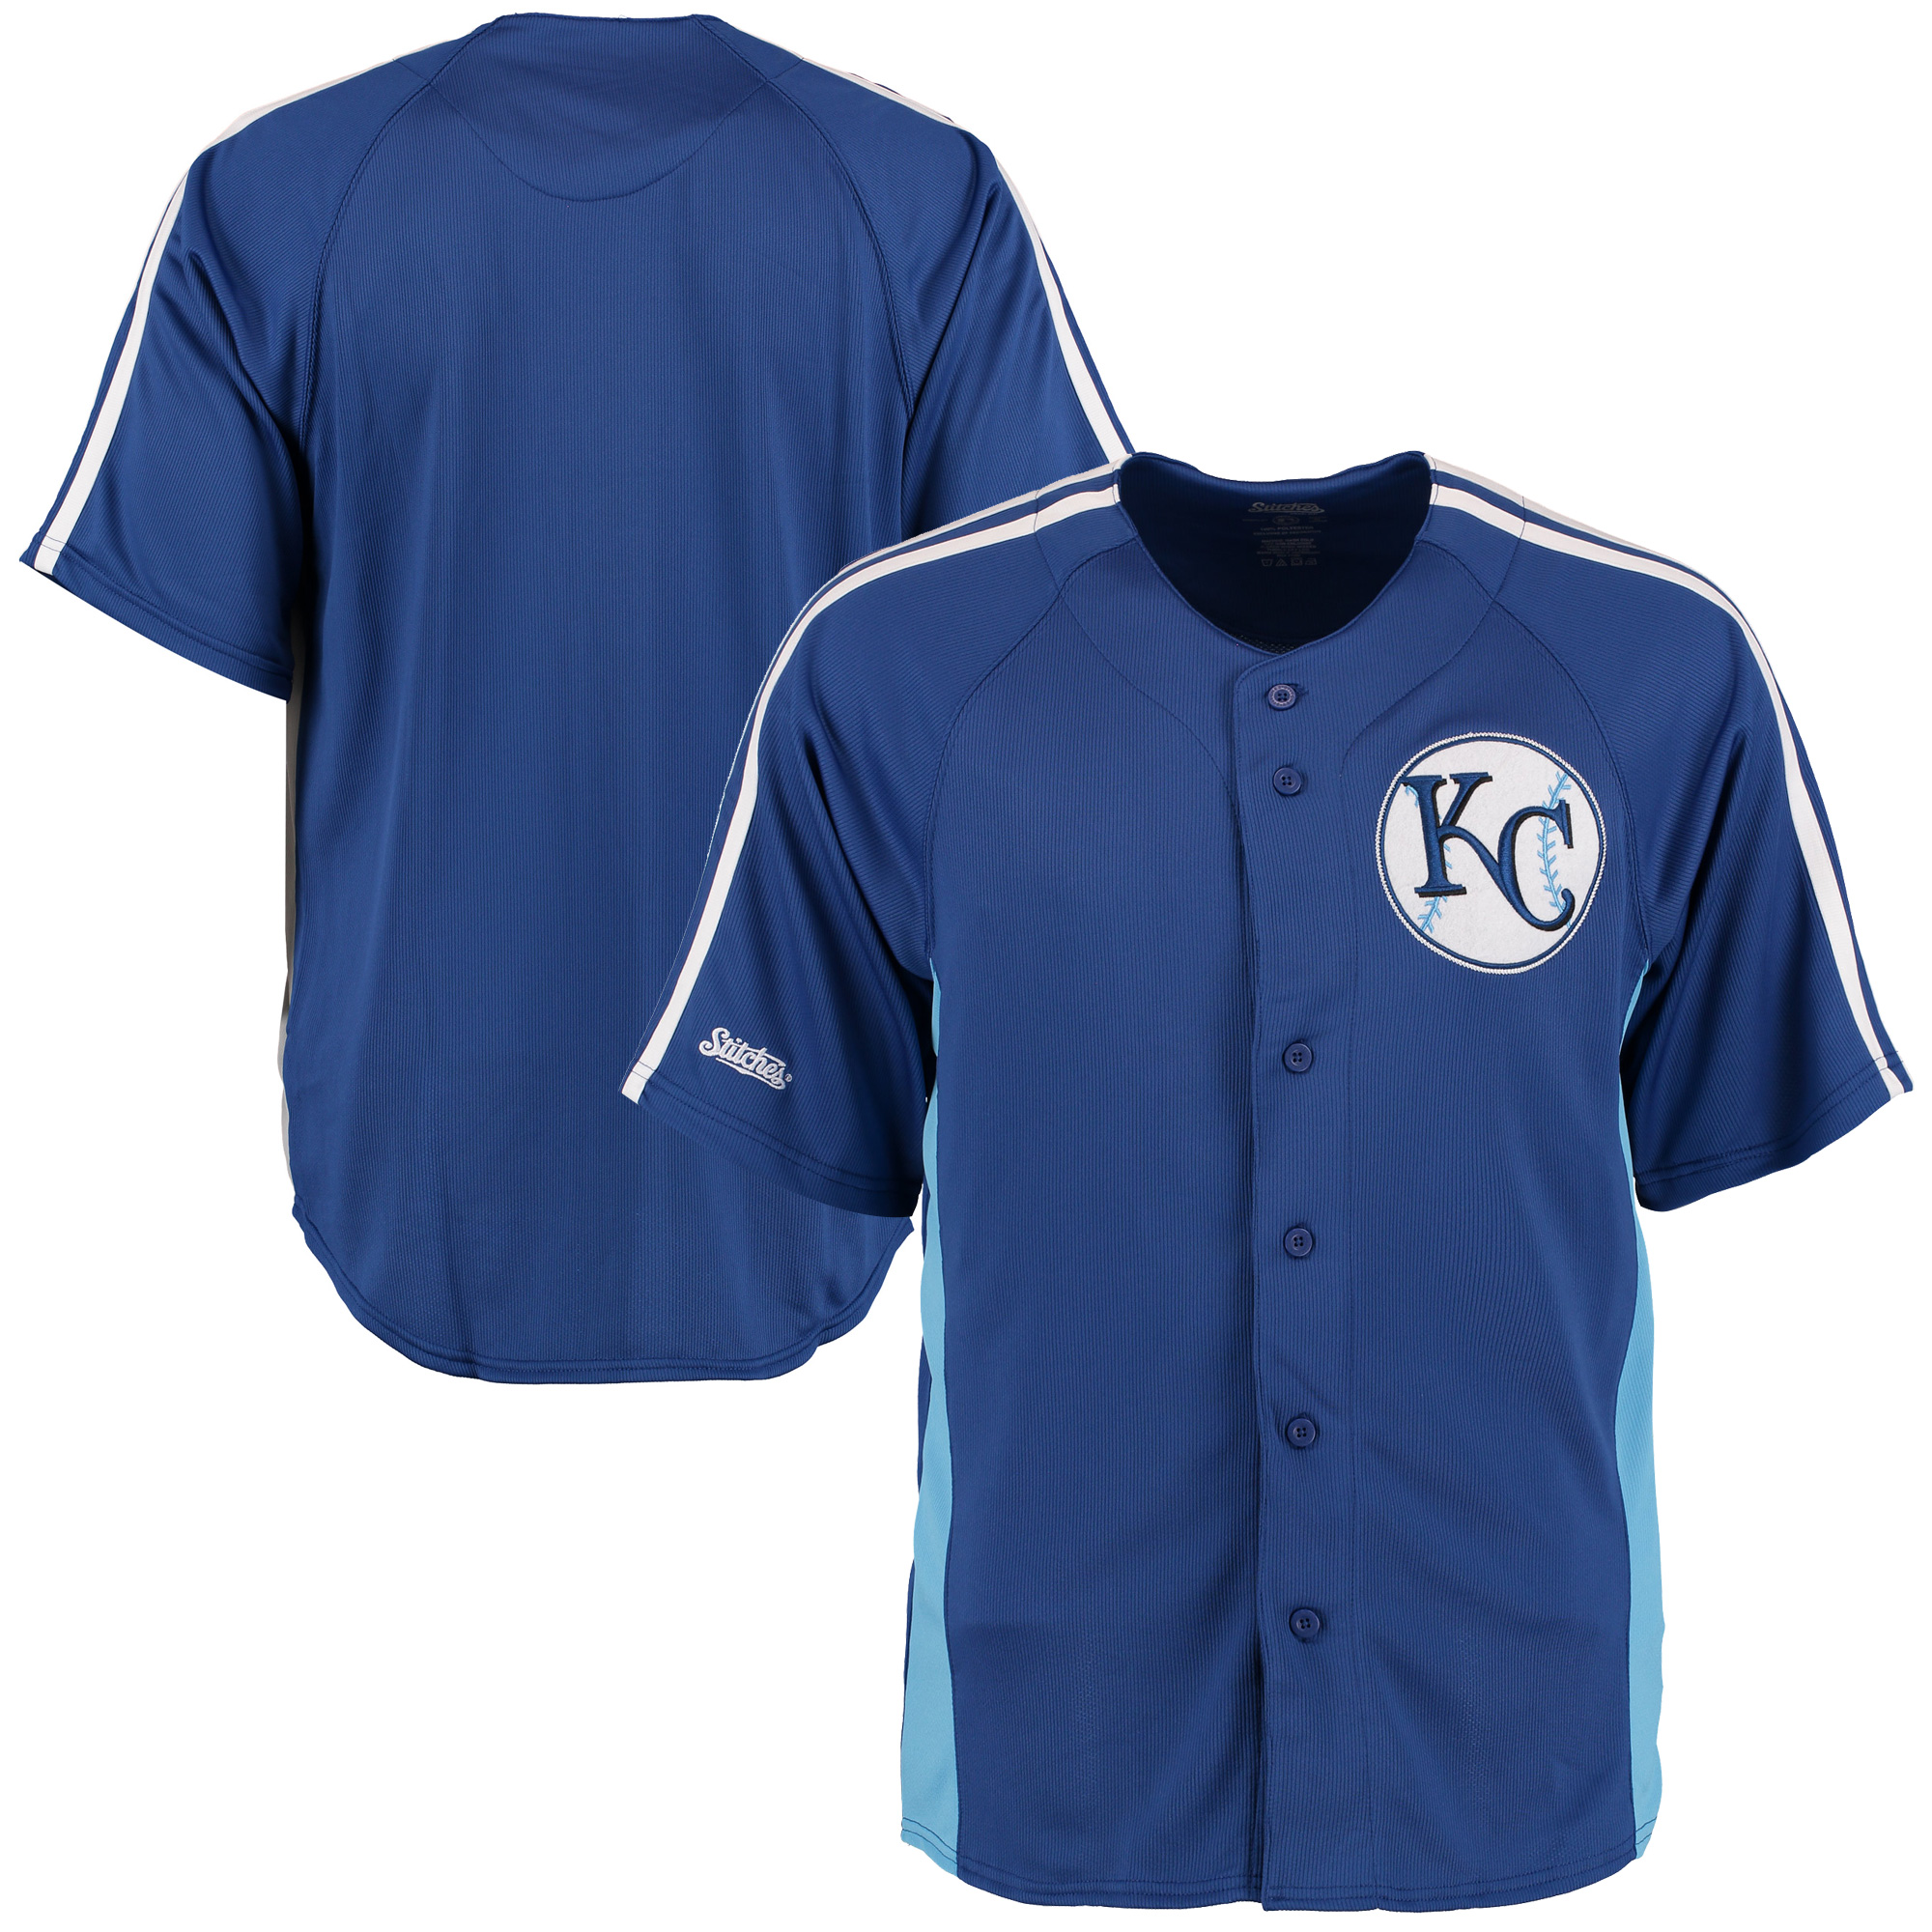 Kansas City Royals Stitches Cut off Man Fashion Full Button Jersey - Royal